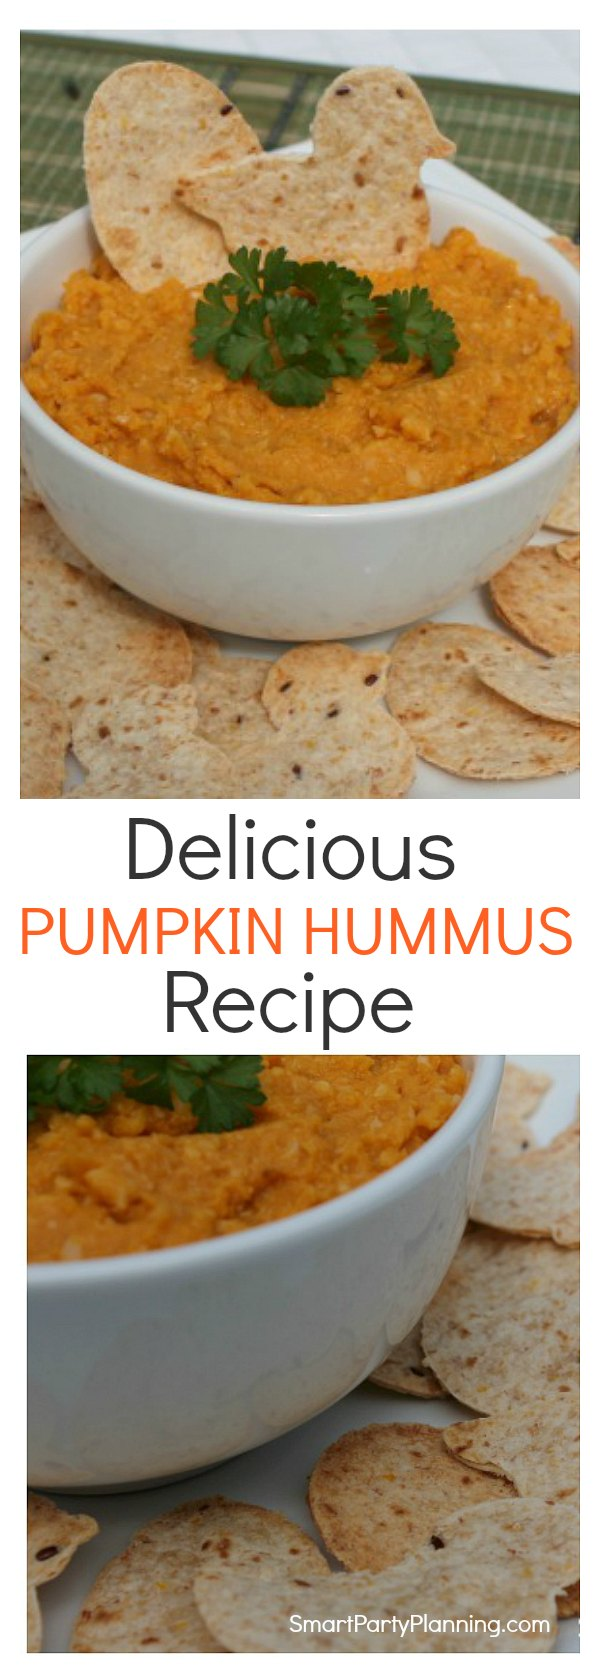 This pumpkin hummus recipe is incredibly refreshing and is perfect as a simple appetizer. Alternatively if you are looking for a lovely afternoon snack with a glass of wine, this dip will hit the spot!